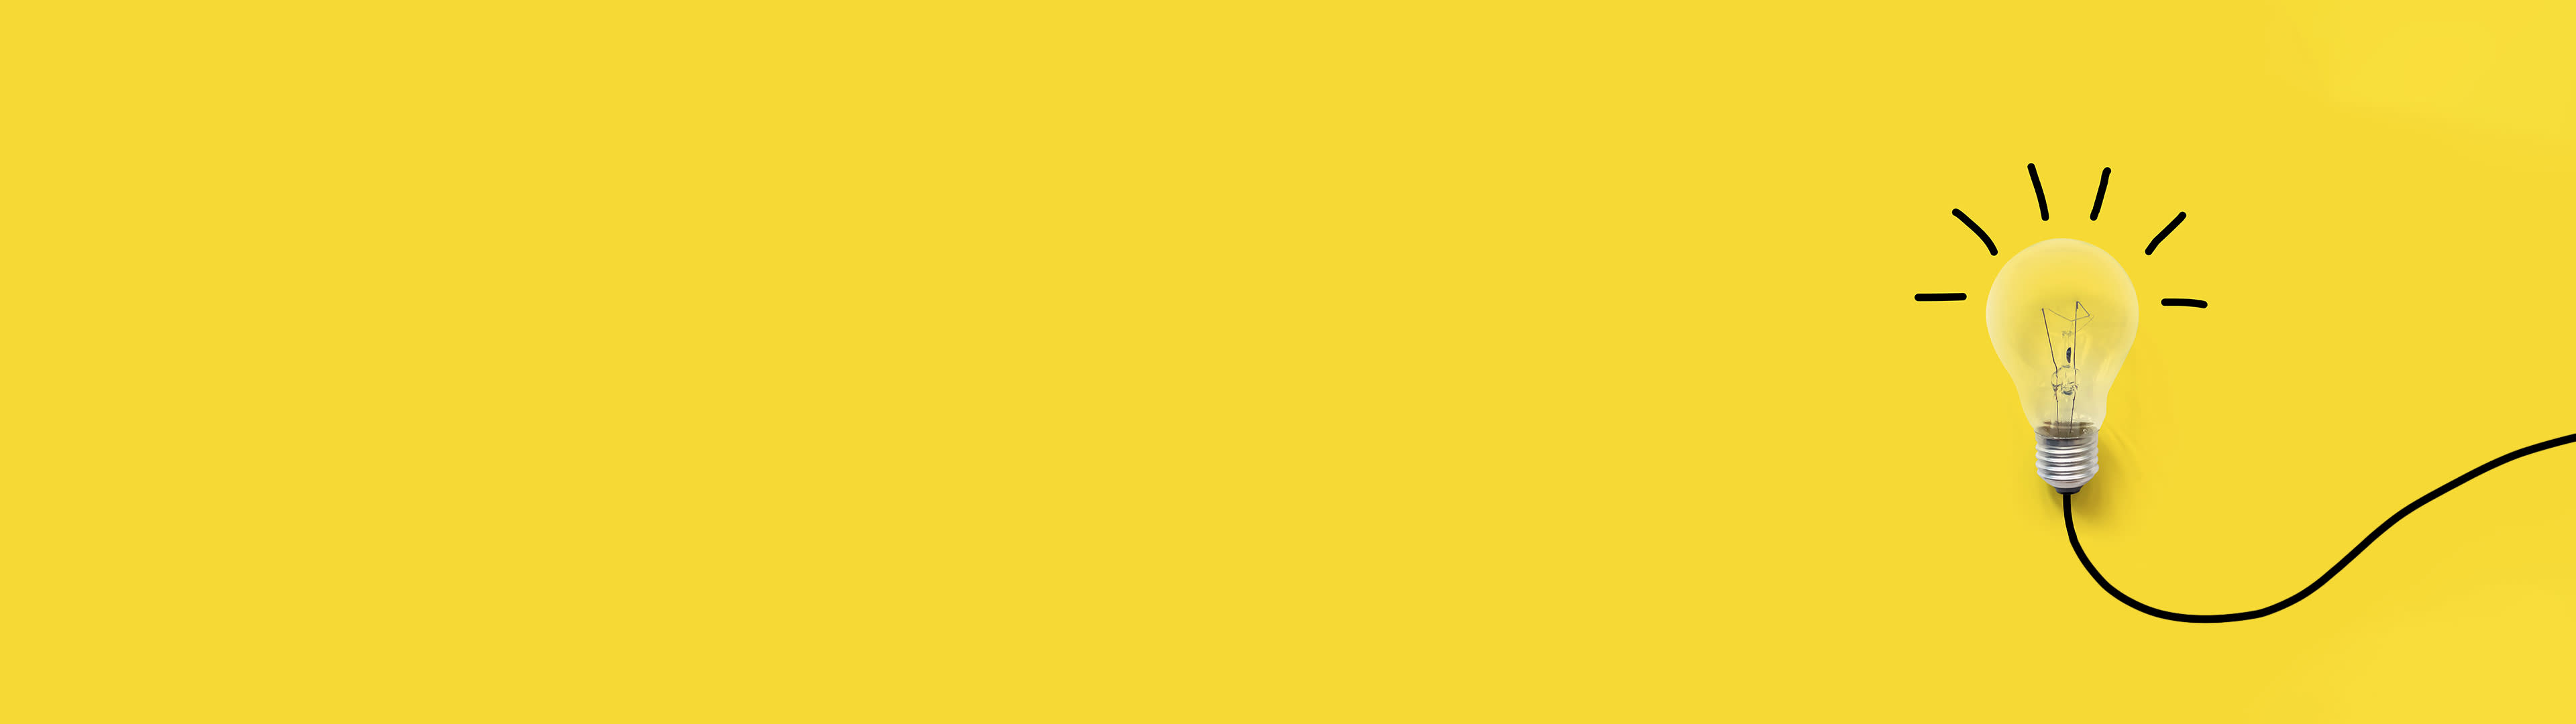 Light bulb with an illustrated shine on a yellow background